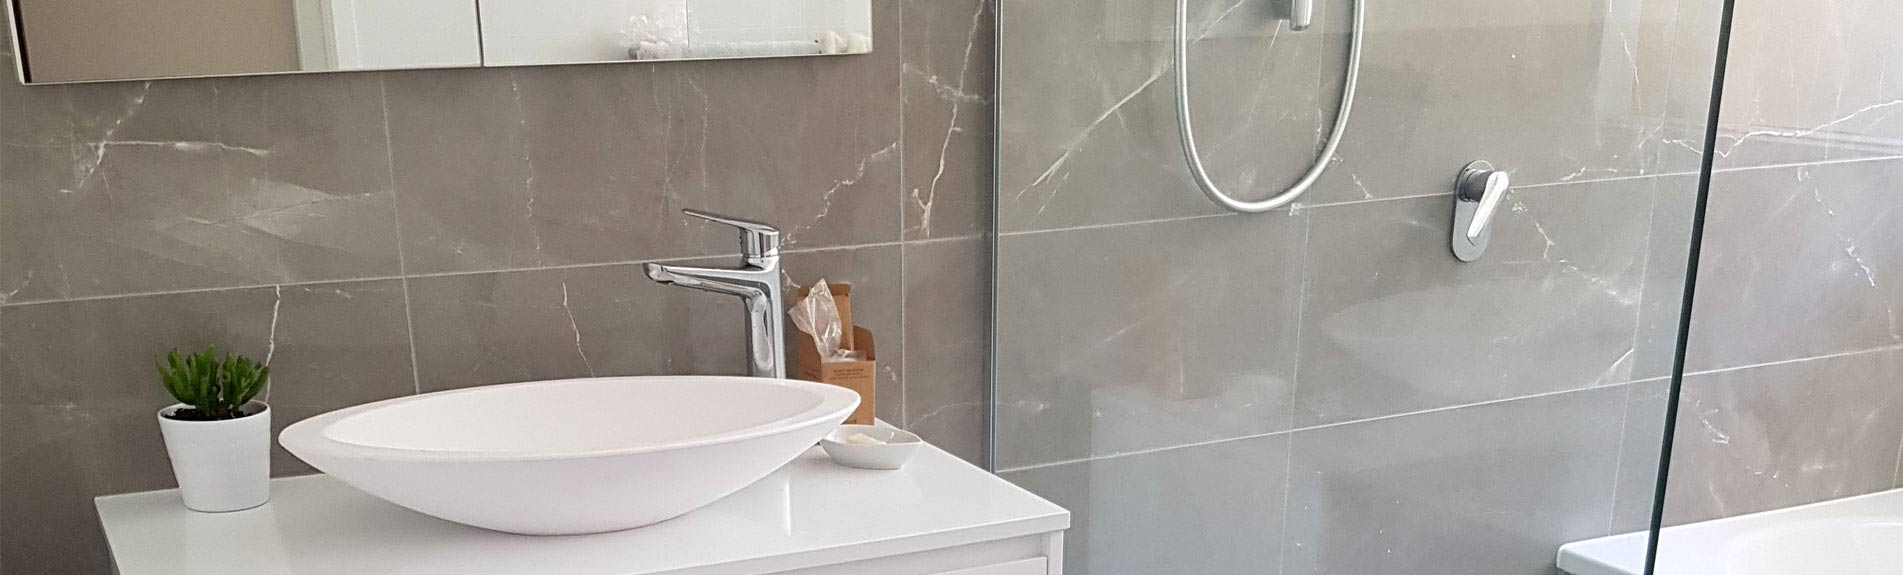 Bathroom Renovations Canberra | Small Budget Bathroom ...